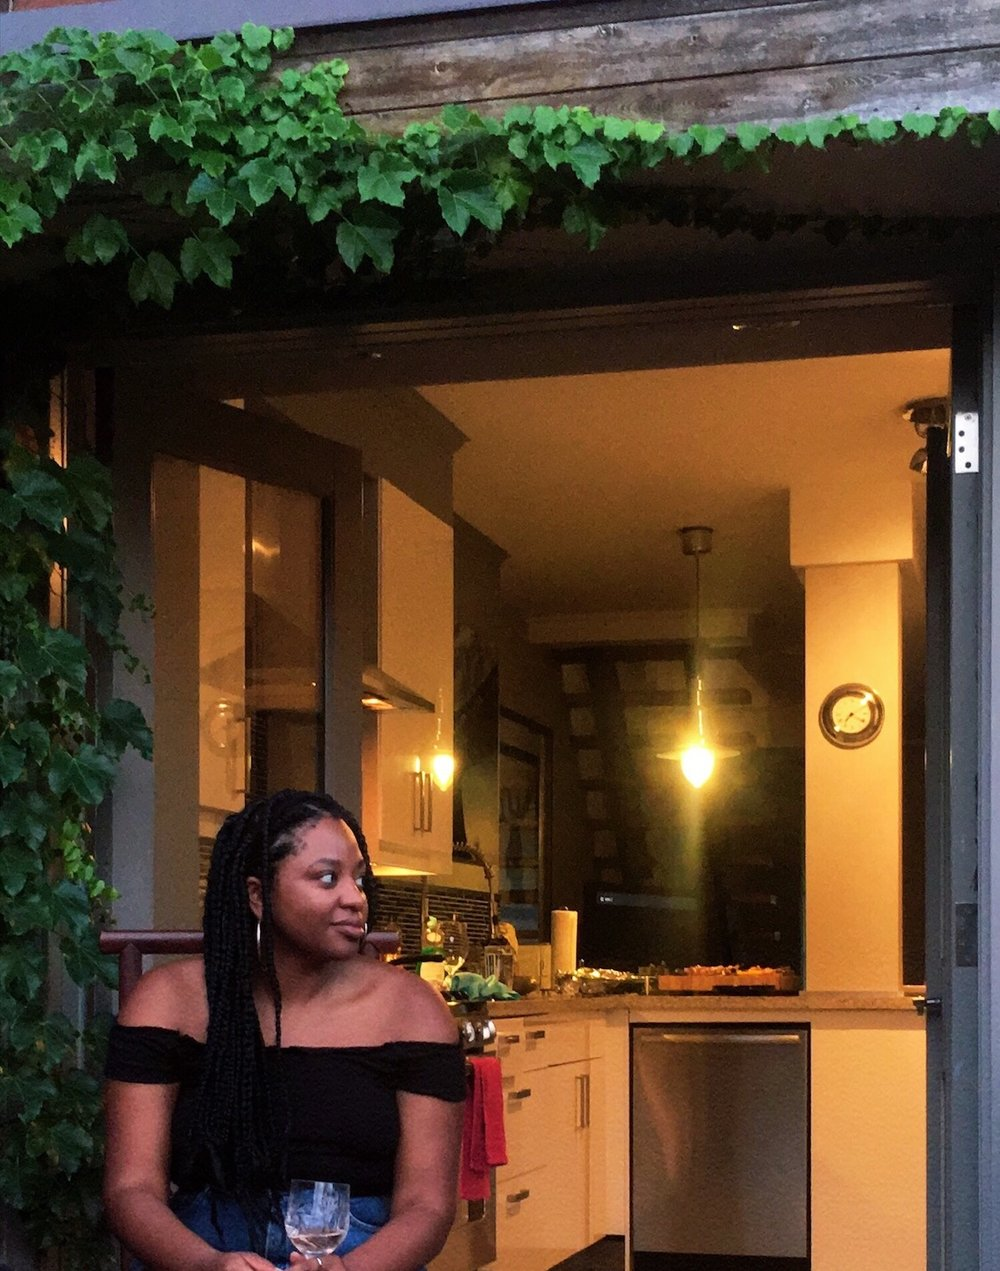 Personal Chef, Meal Prep Expert and Toronto Blogger